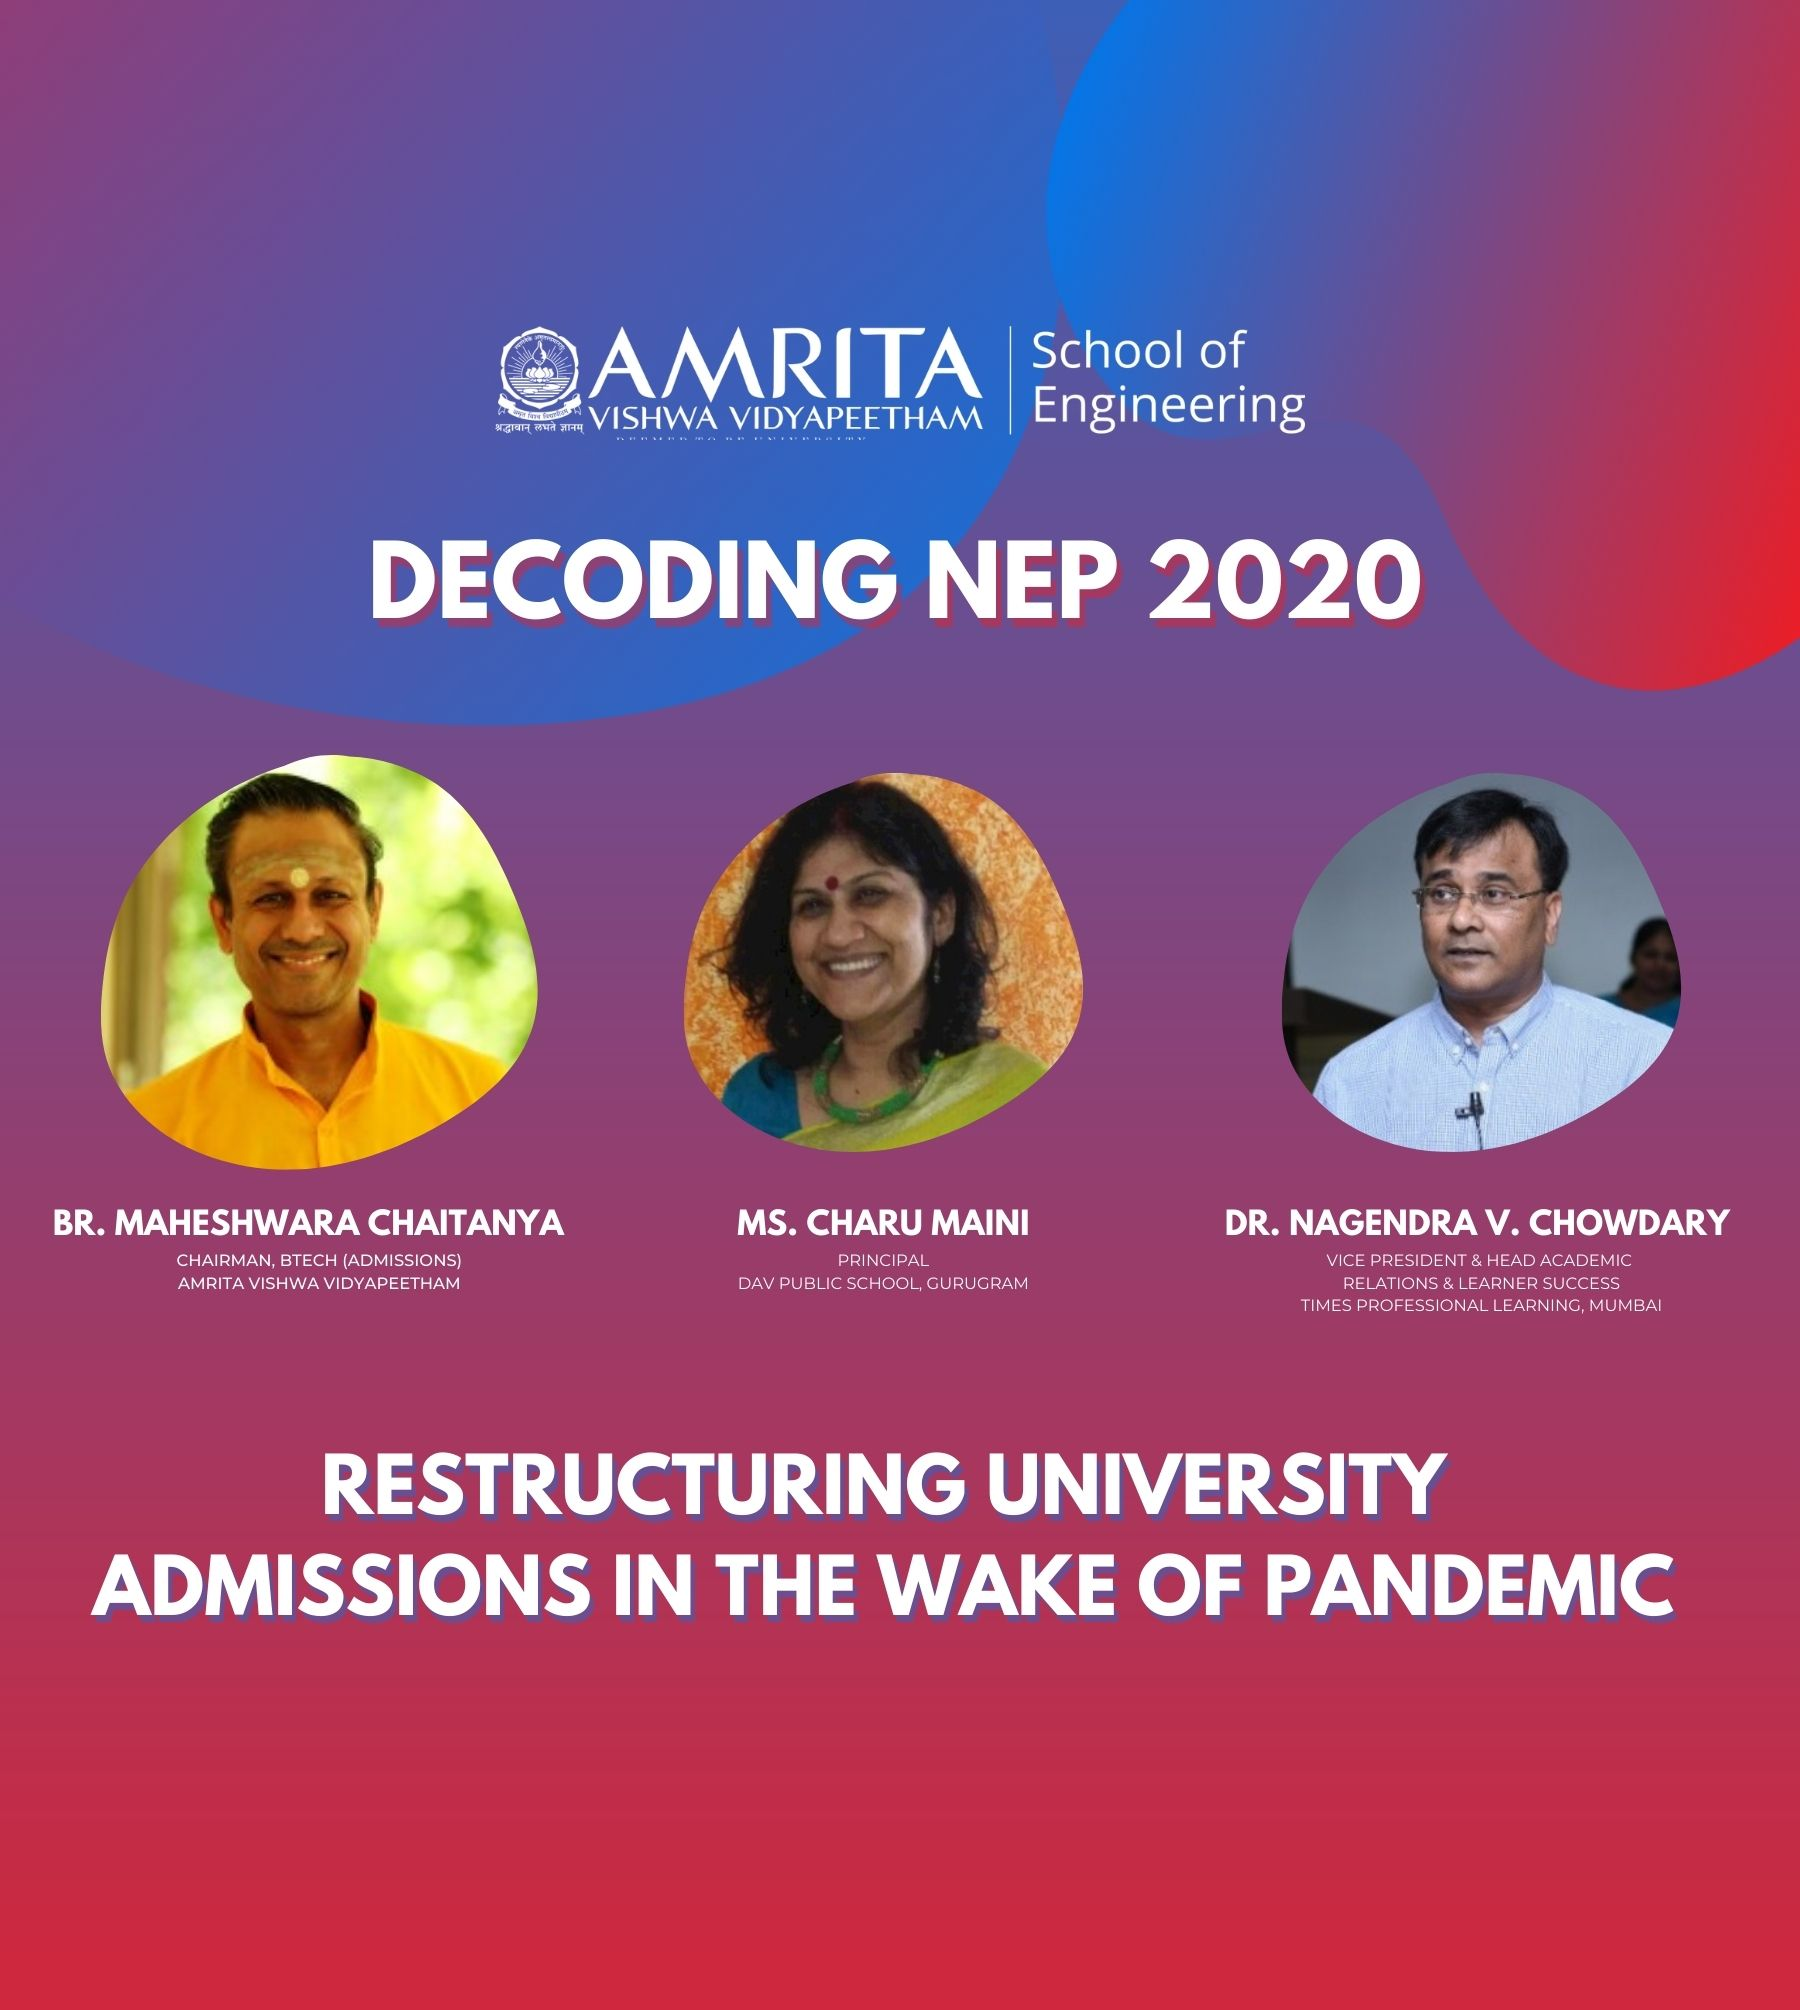 Restructuring University Admissions in the wake of Pandemic